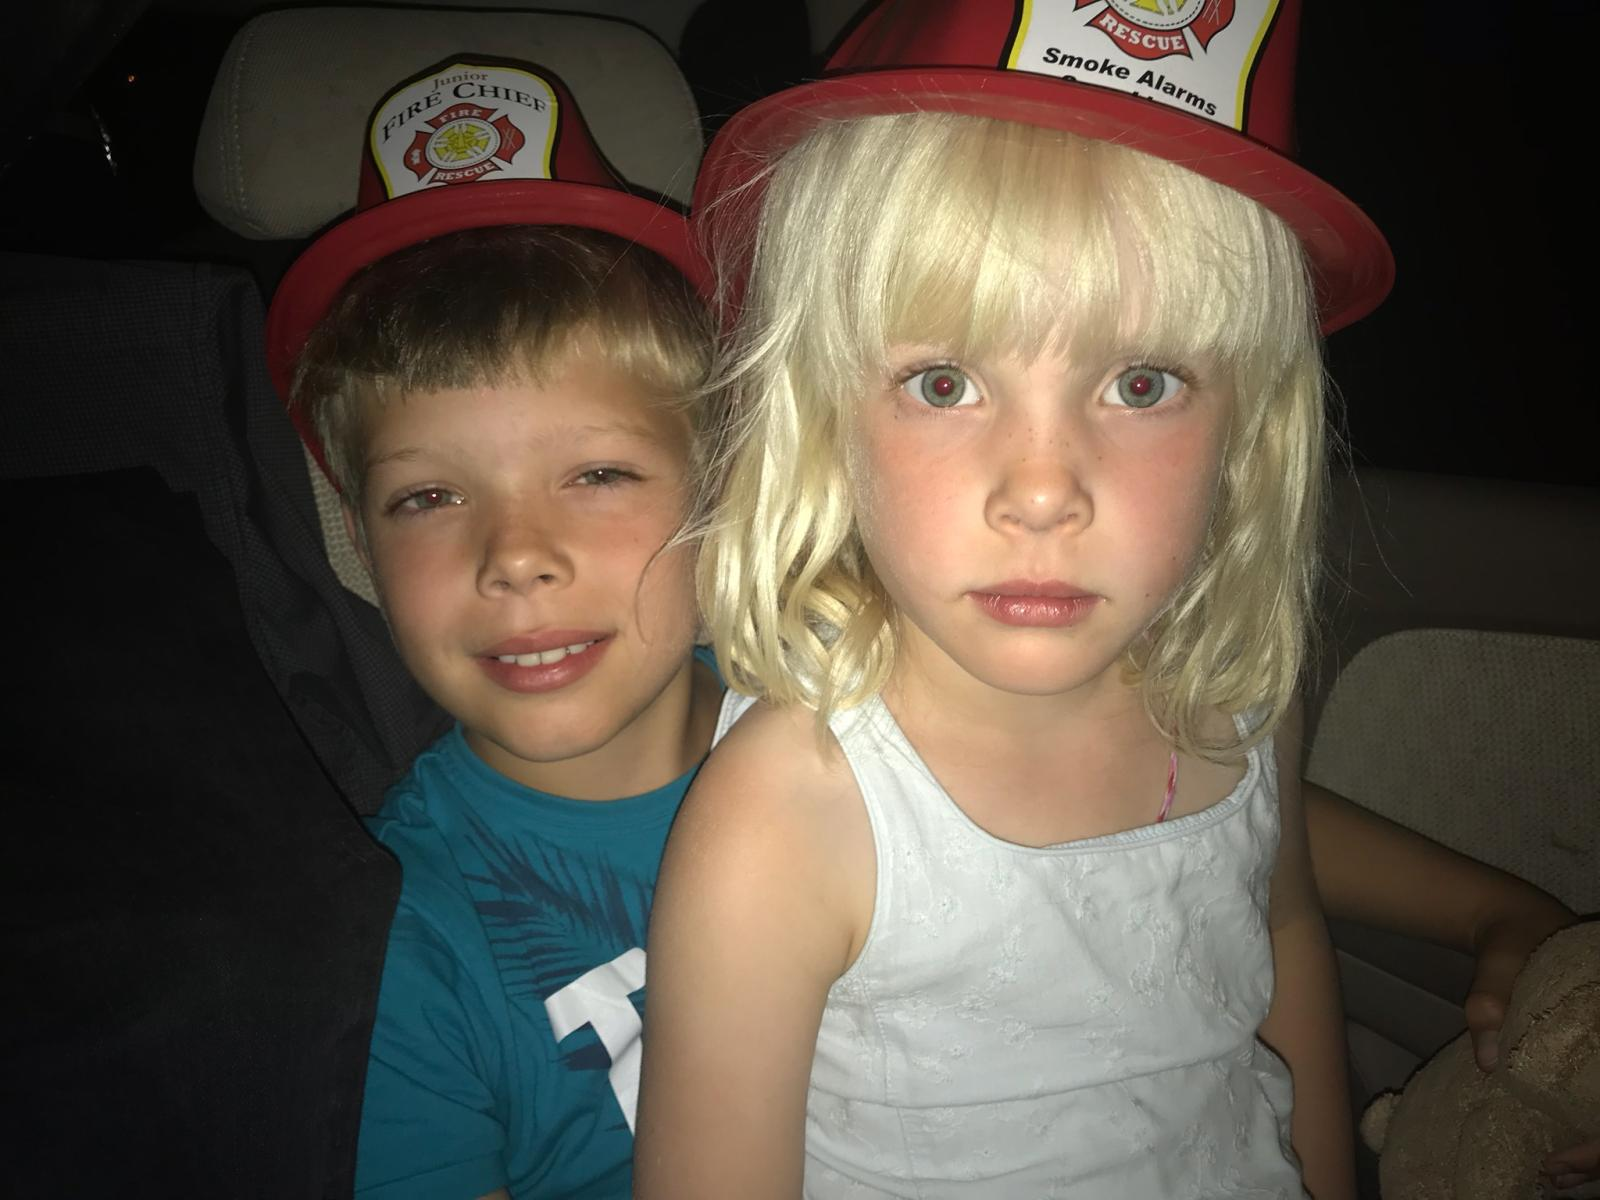 The firefighters were so great and gave the kids a hat! -